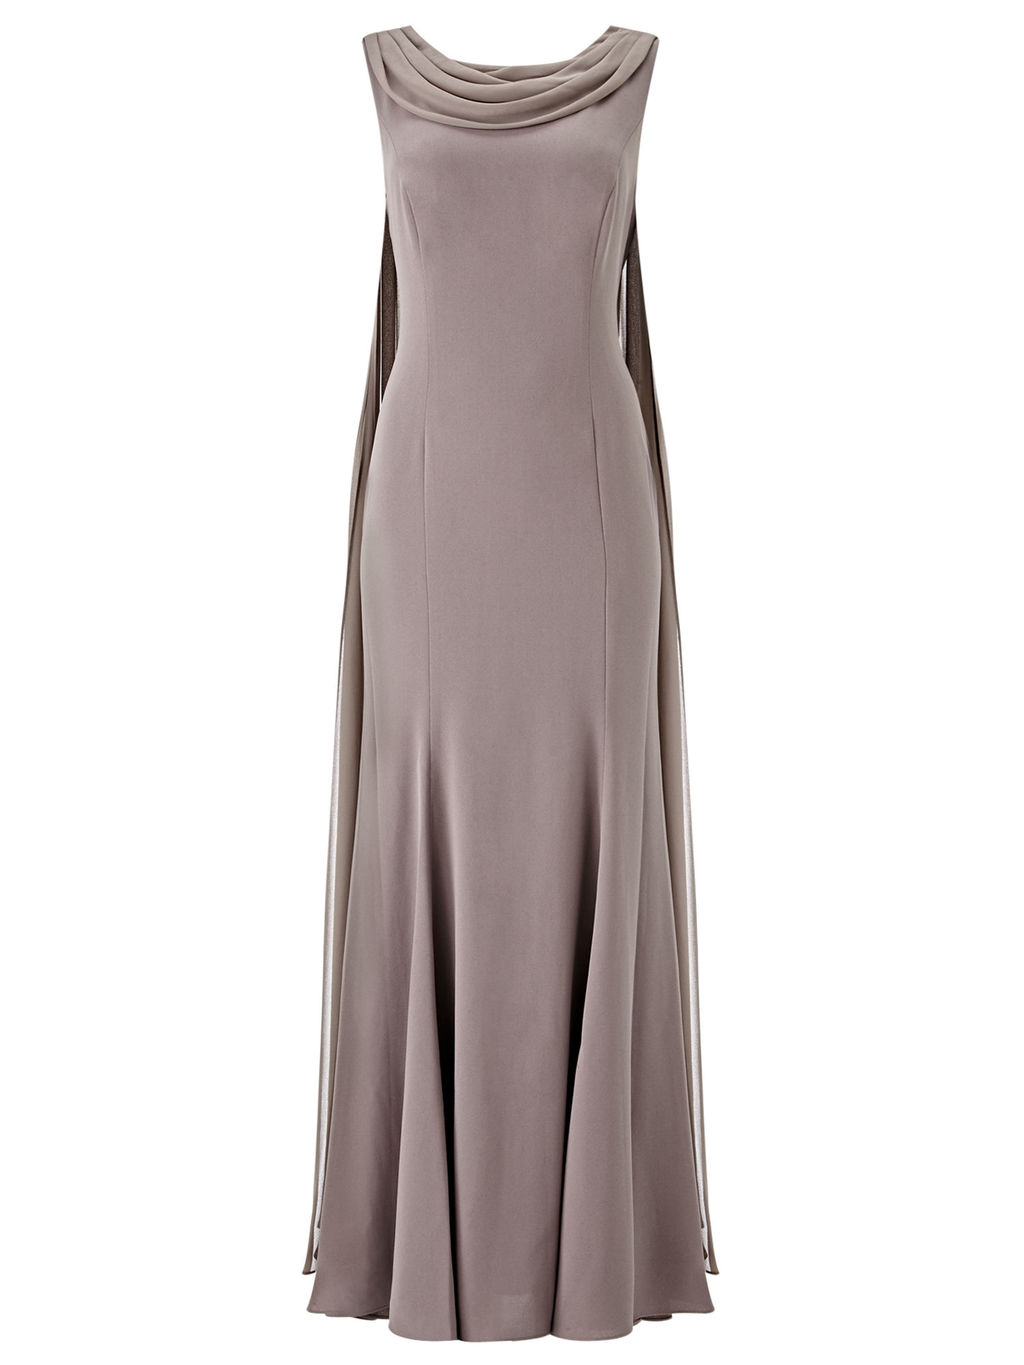 Drape Cape Maxi Dress - neckline: cowl/draped neck; pattern: plain; sleeve style: sleeveless; style: maxi dress; length: ankle length; back detail: back revealing; predominant colour: mid grey; fit: body skimming; fibres: polyester/polyamide - 100%; occasions: occasion; sleeve length: sleeveless; texture group: crepes; pattern type: fabric; season: s/s 2016; wardrobe: event